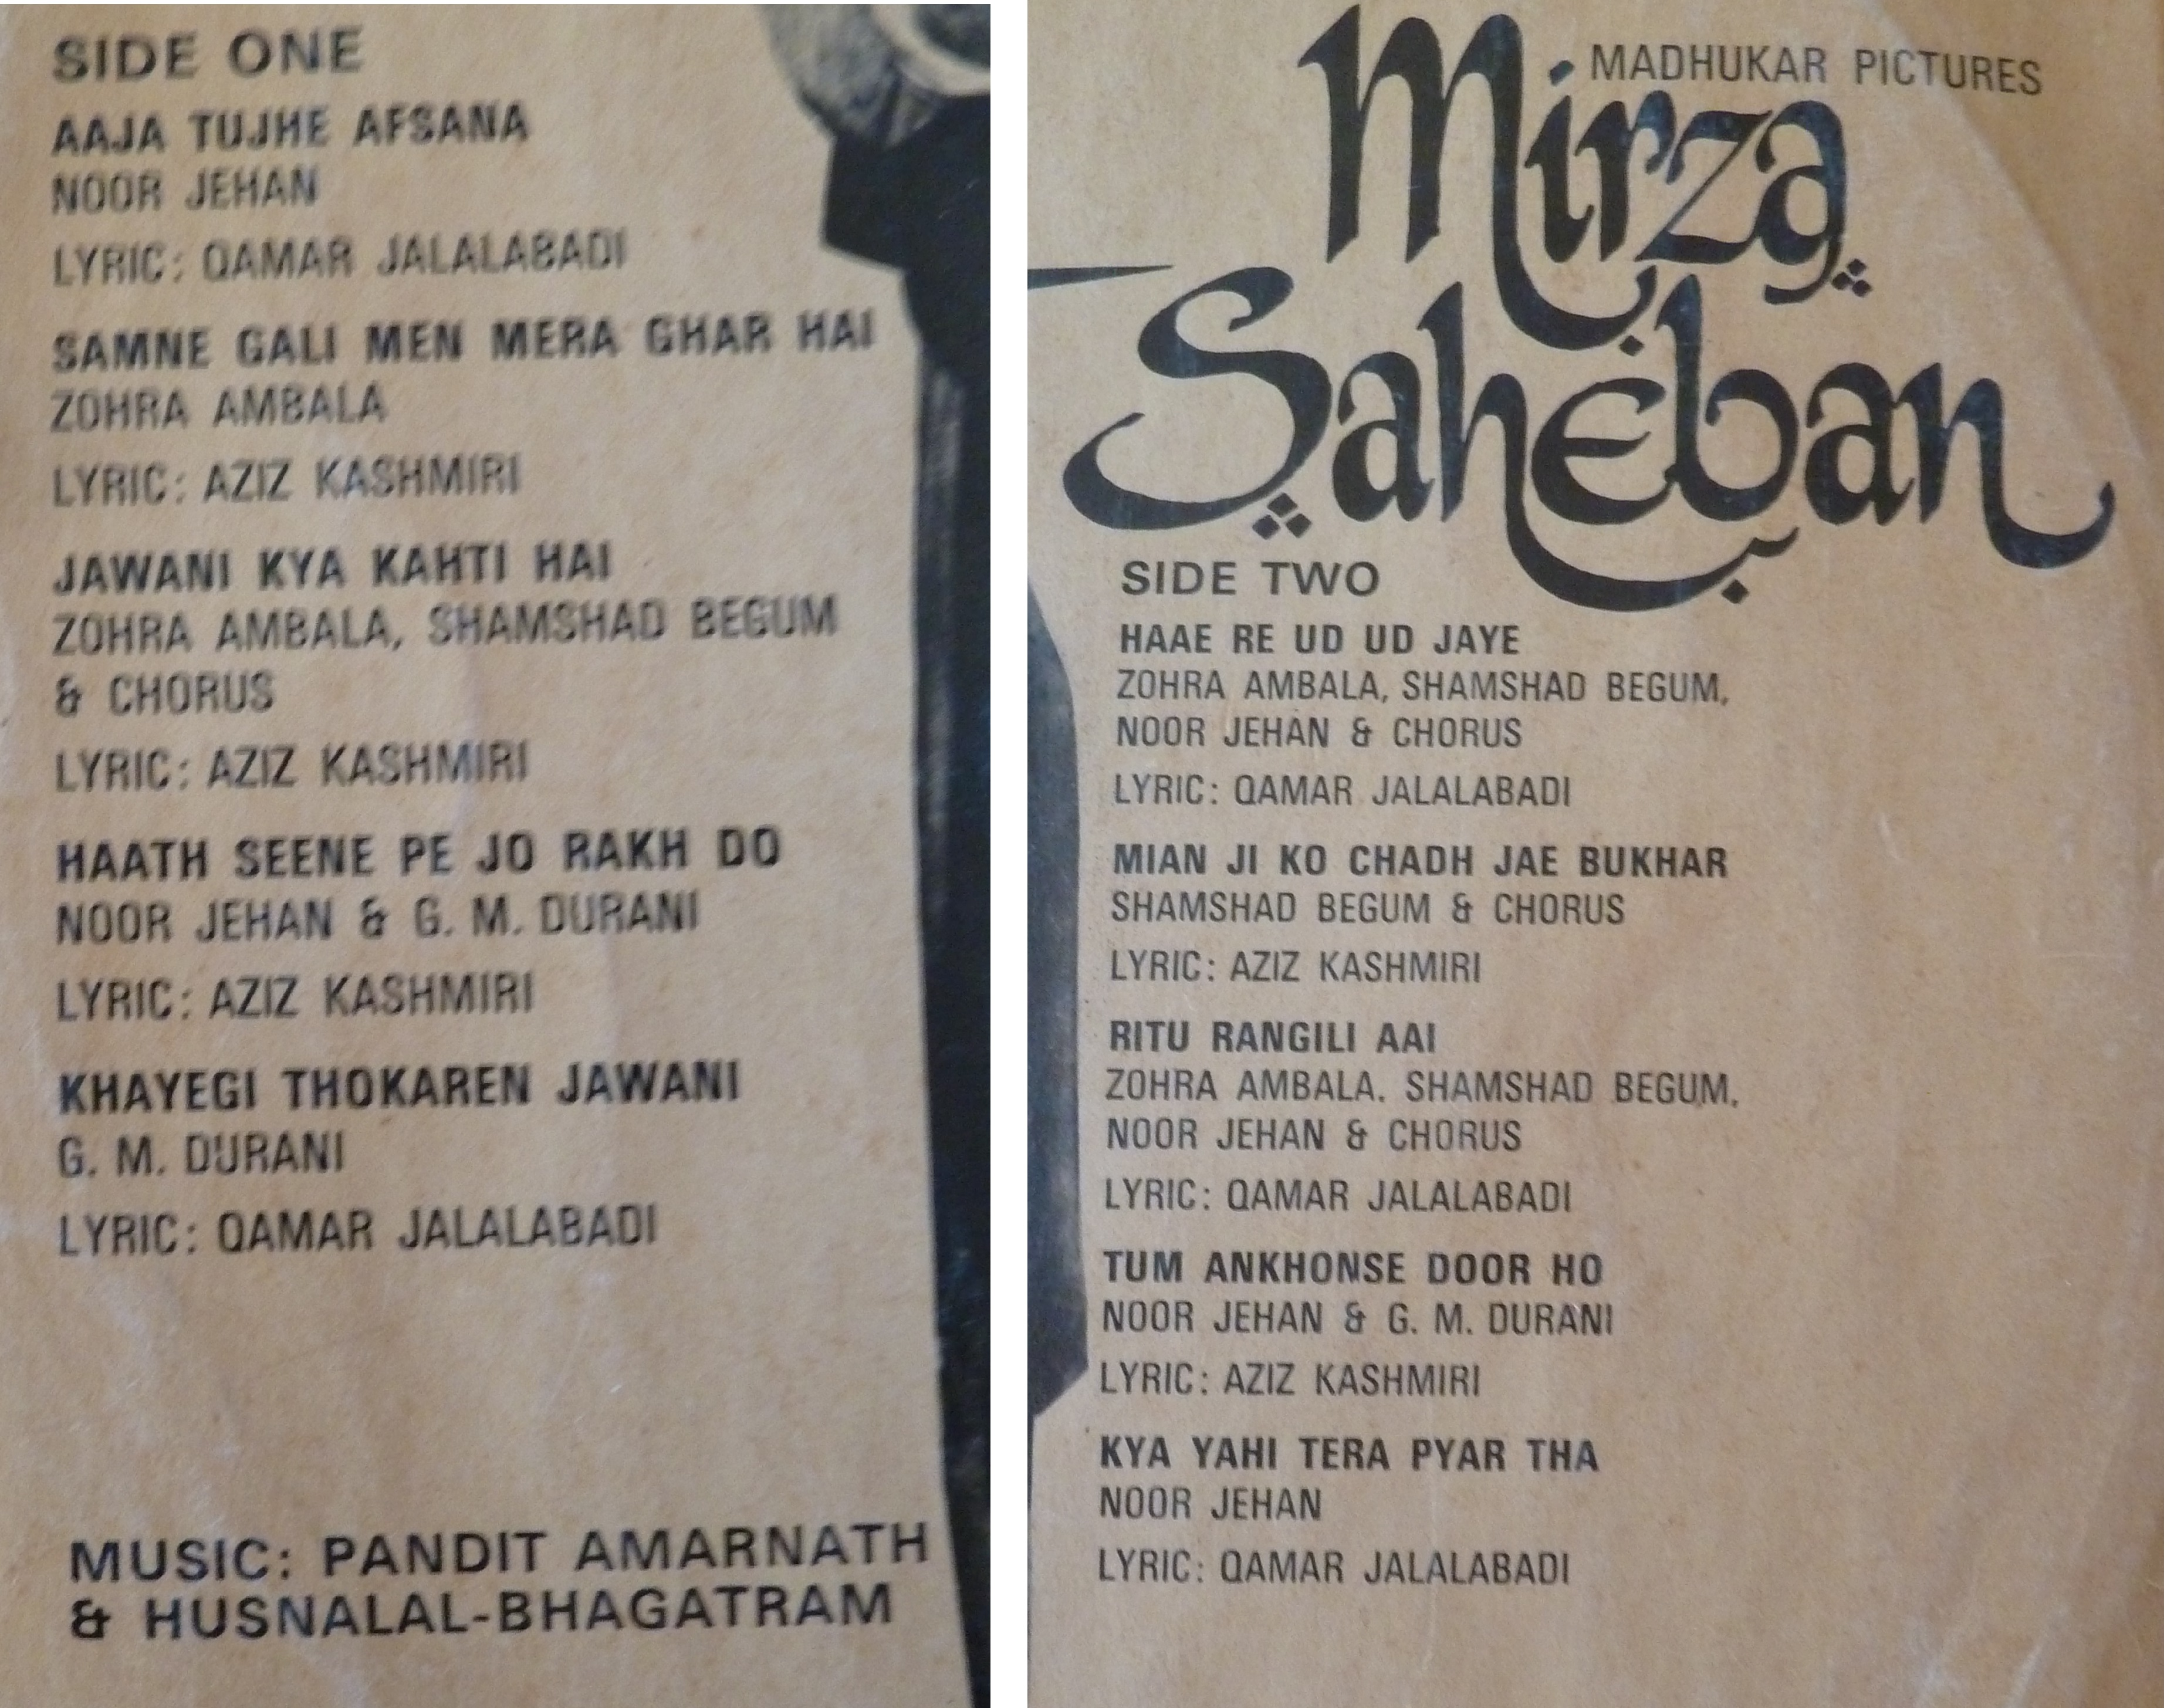 MIRZA SAHIBAN - COLLAGE - 2